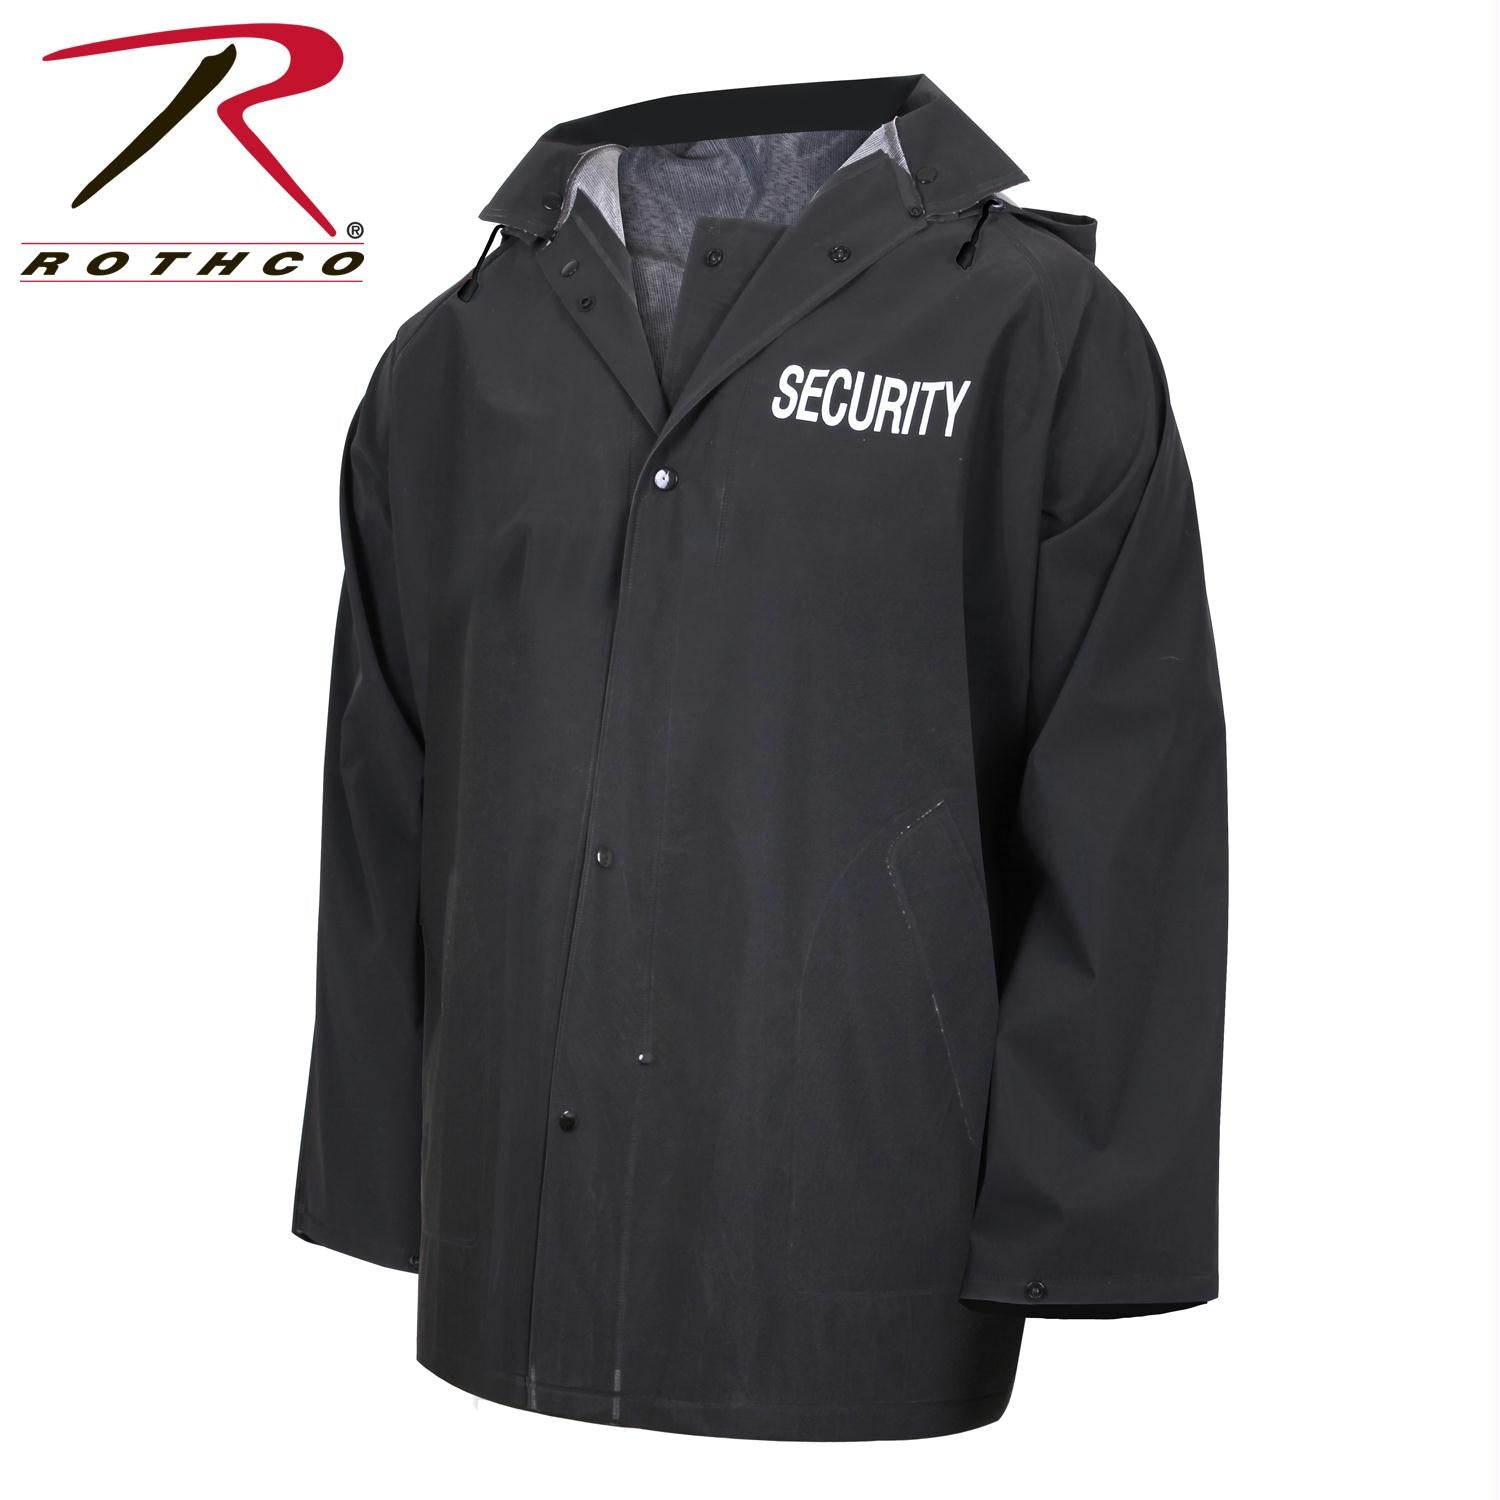 Rothco Security Rain Jacket - XL